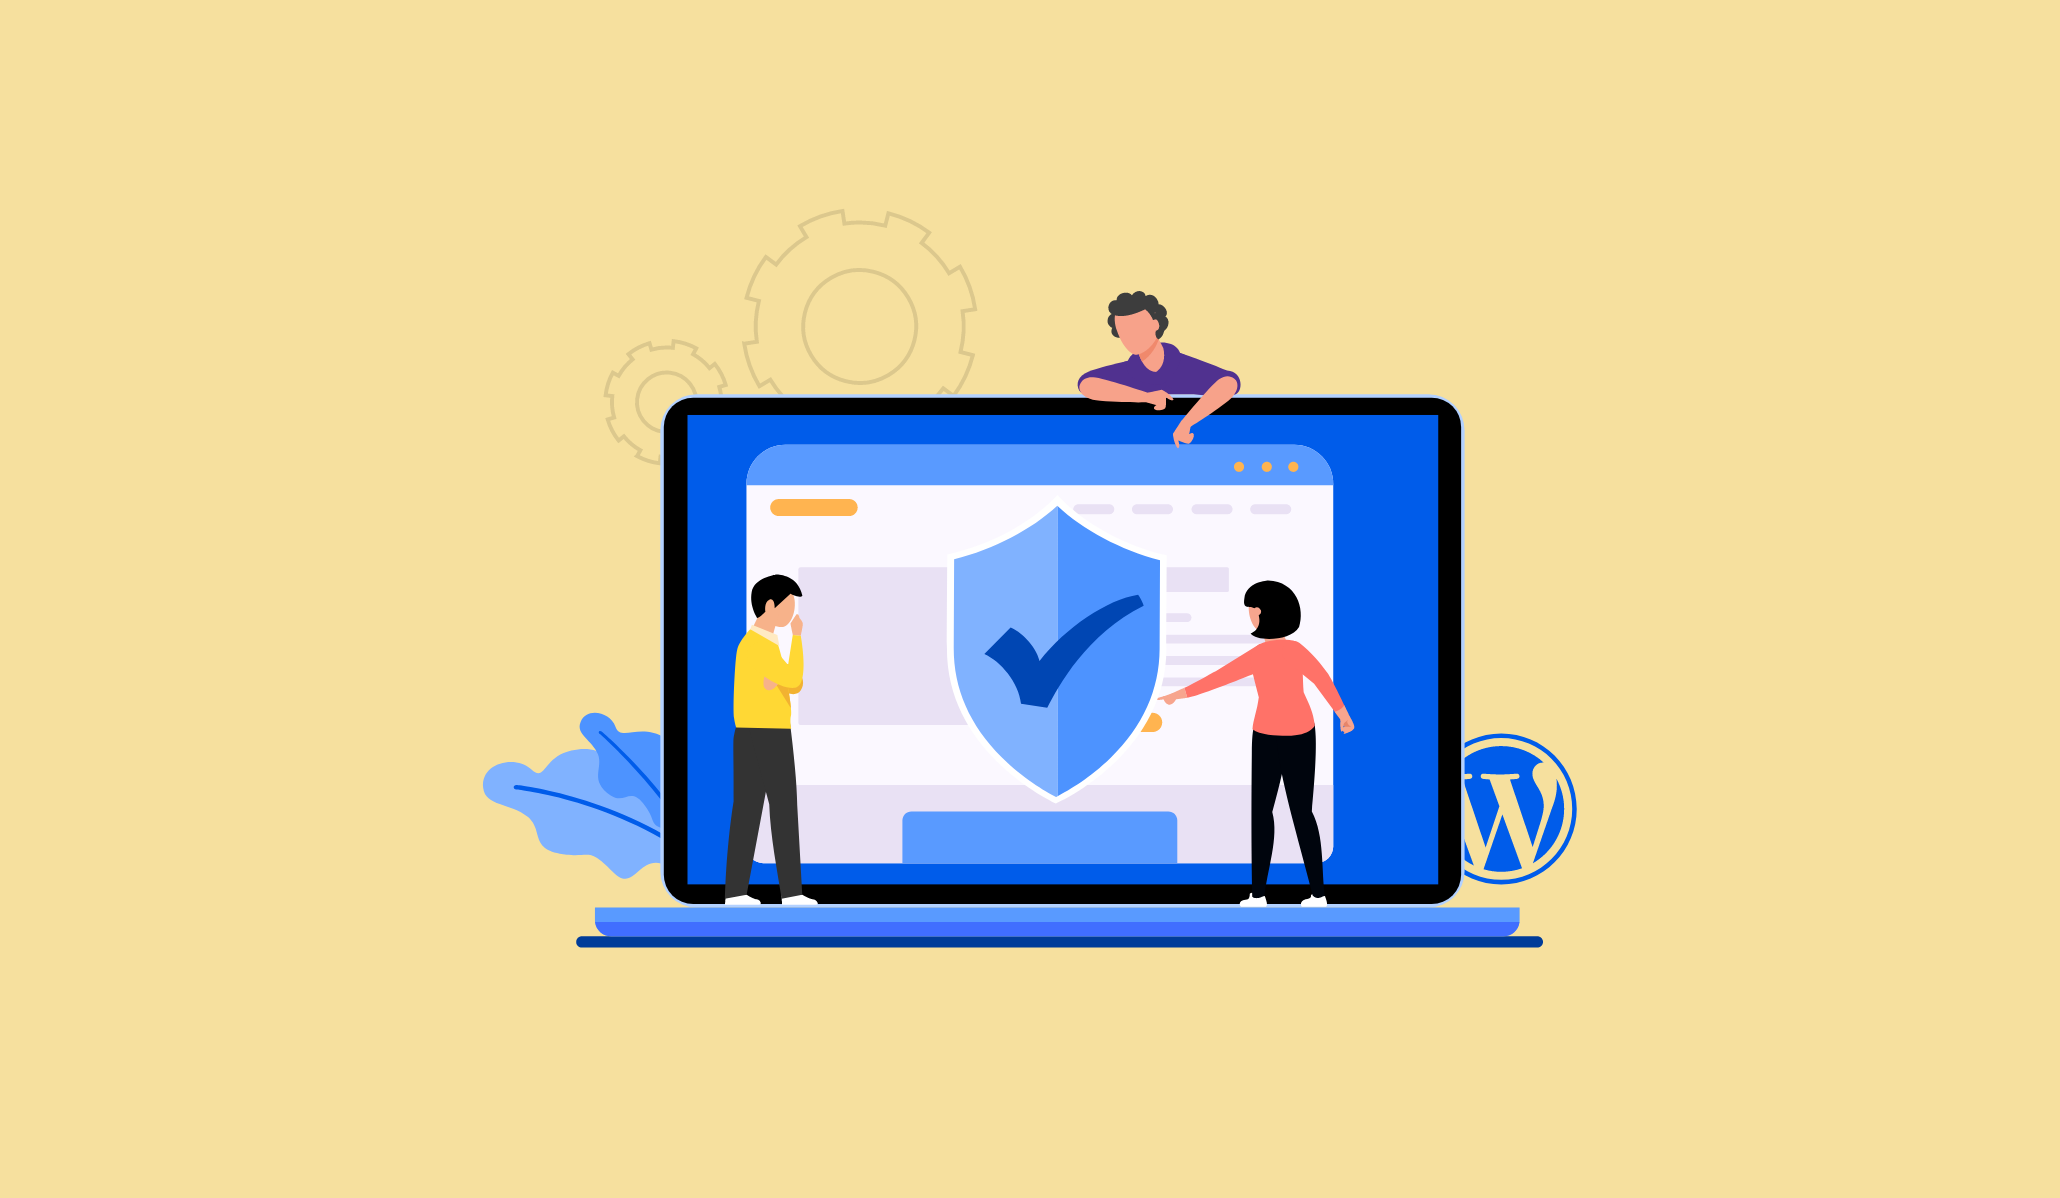 Enterprise WordPress: 21 Security Best Practices to Protect Your Website